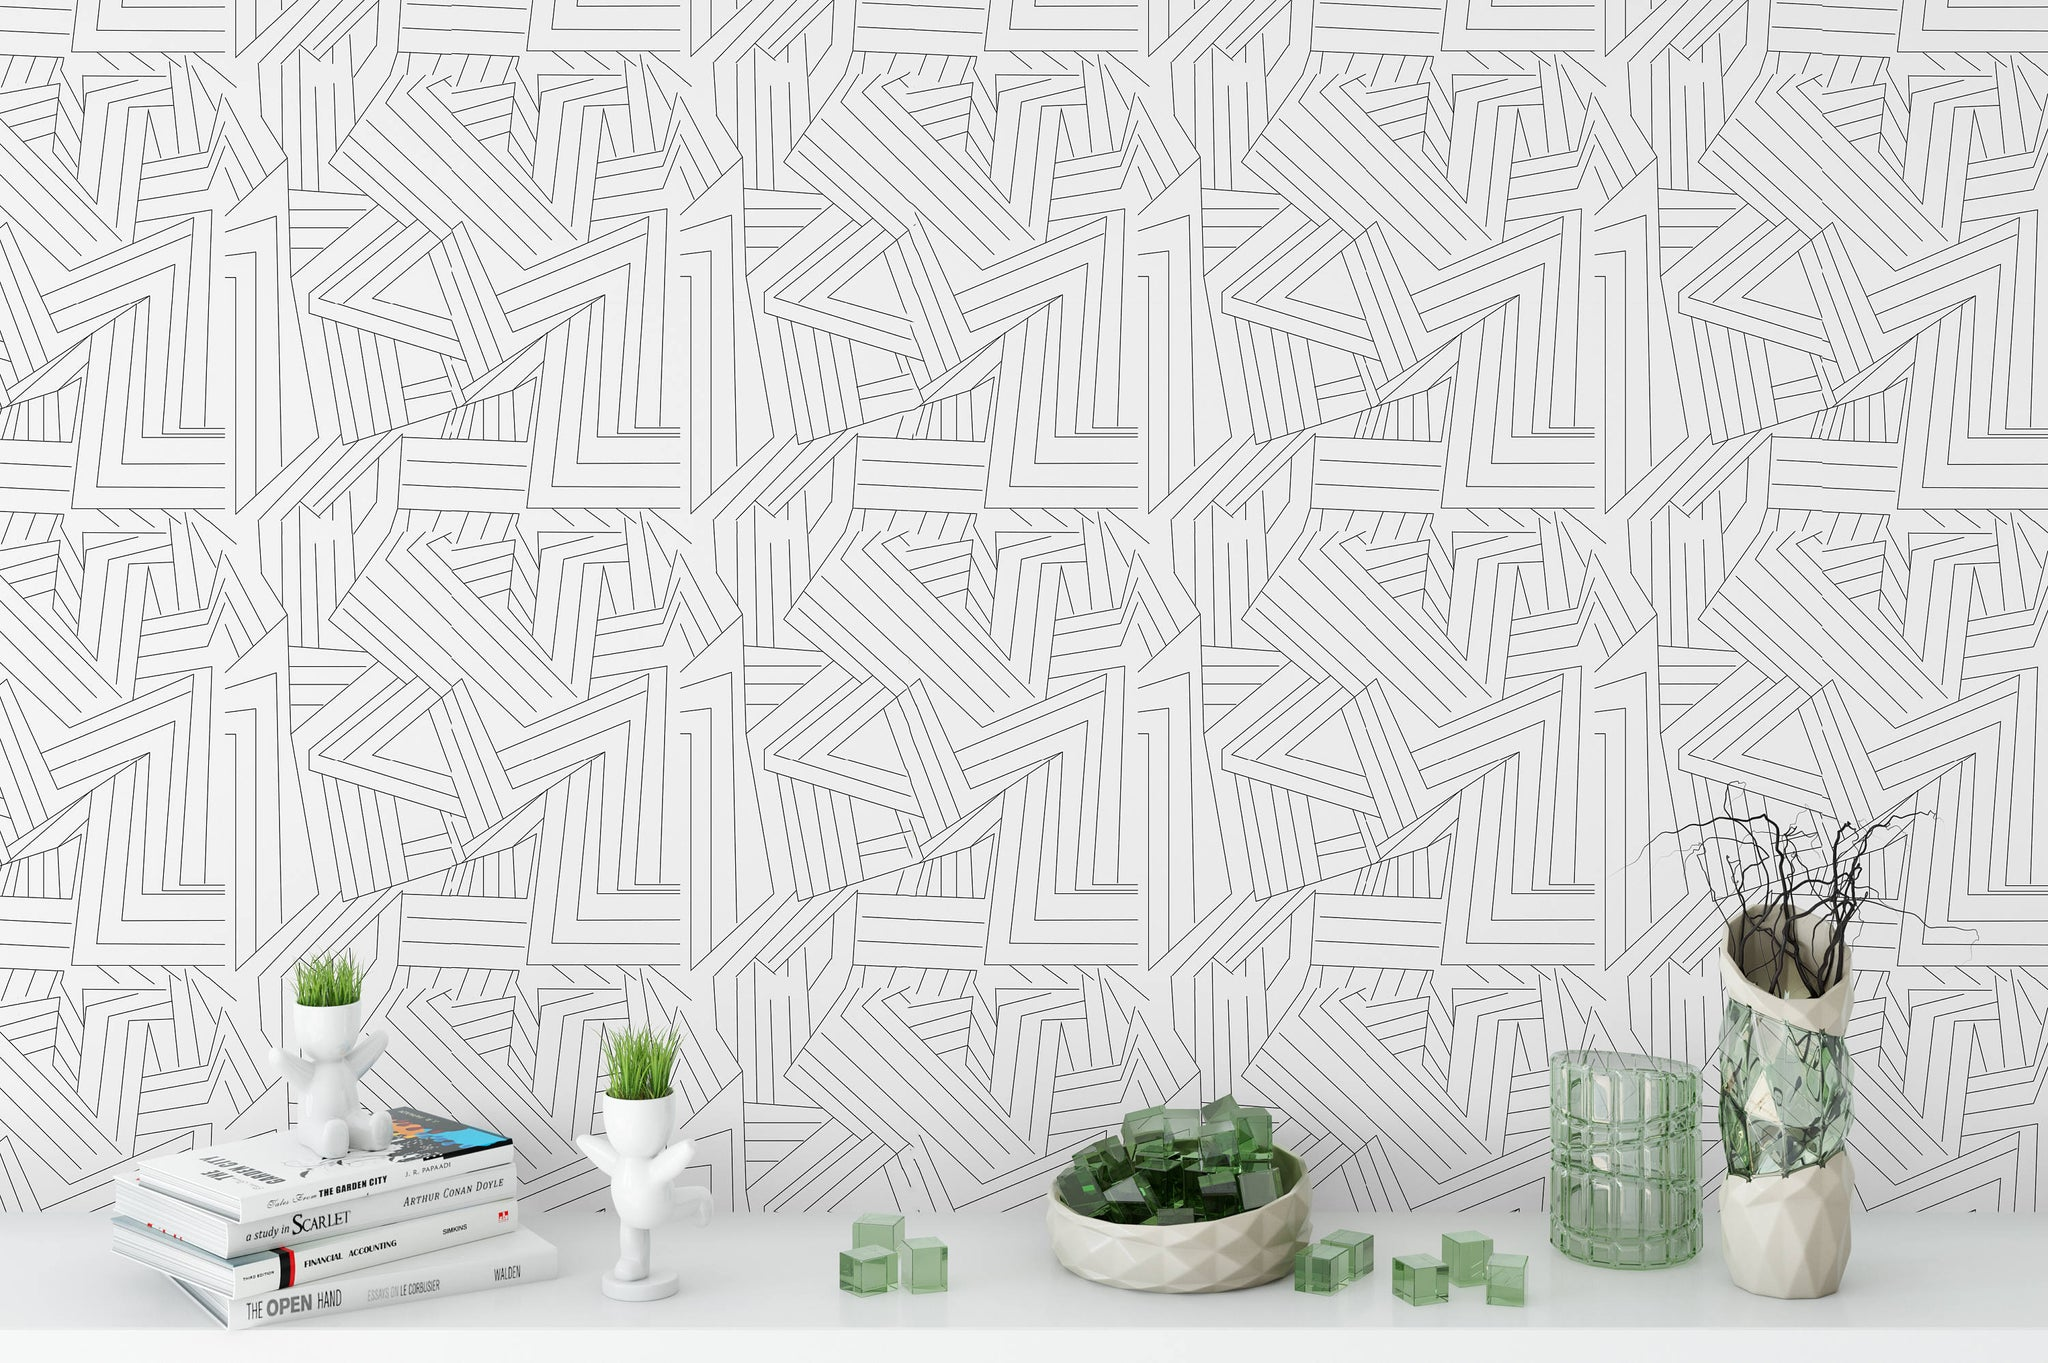 Removable Wallpaper Black White Lines Peel Stick Wallpaper Self